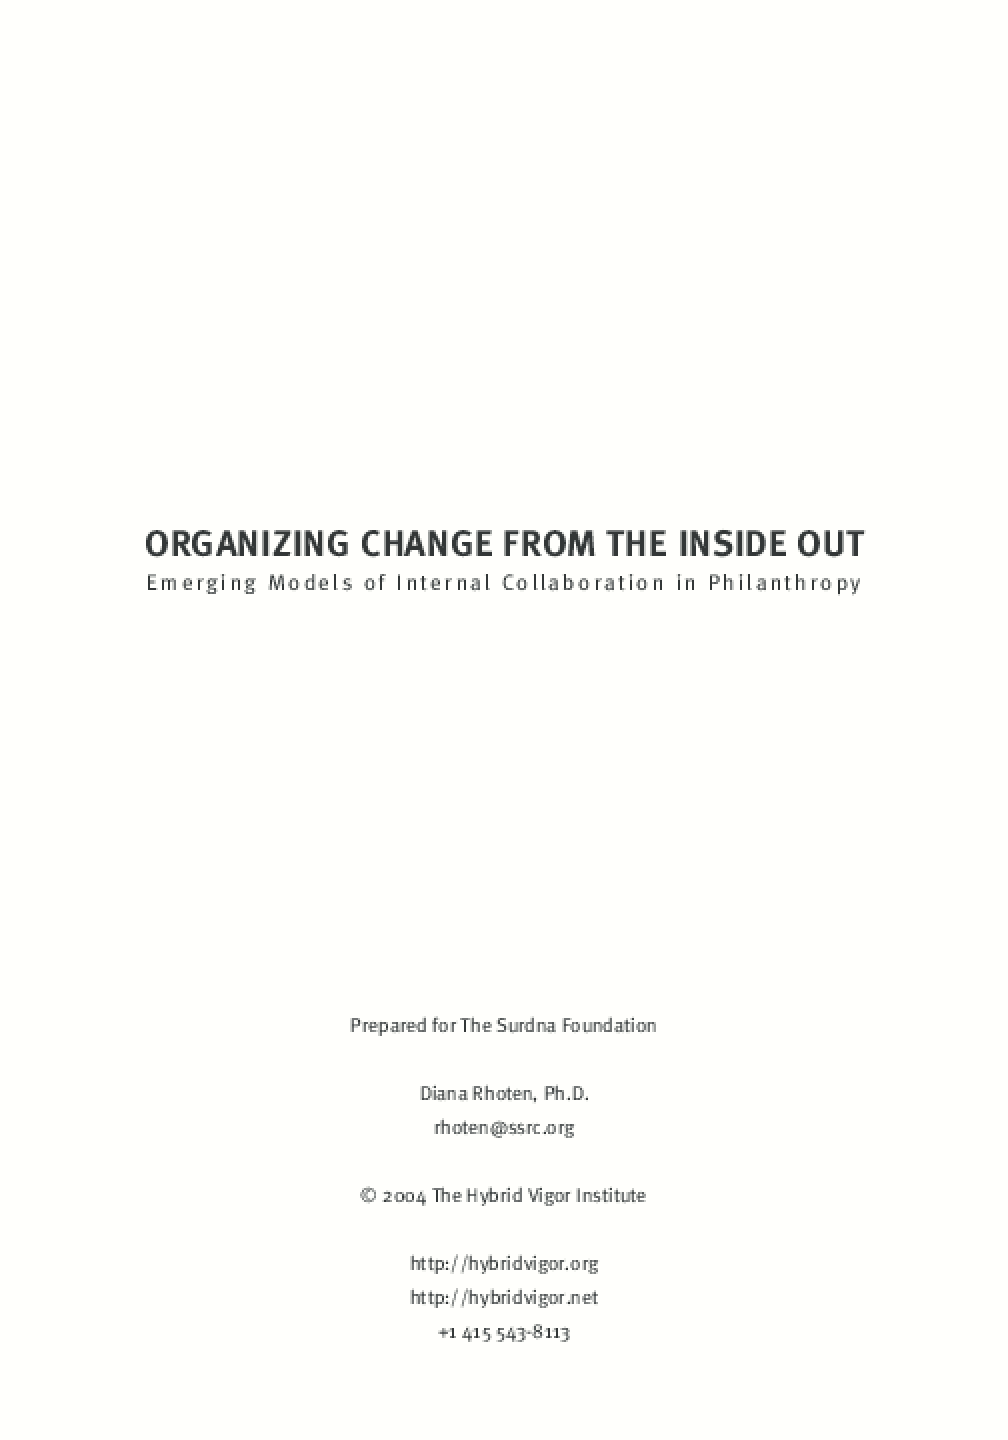 Organizing Change From the Inside Out: Emerging Models of Internal Collaboration in Philanthropy